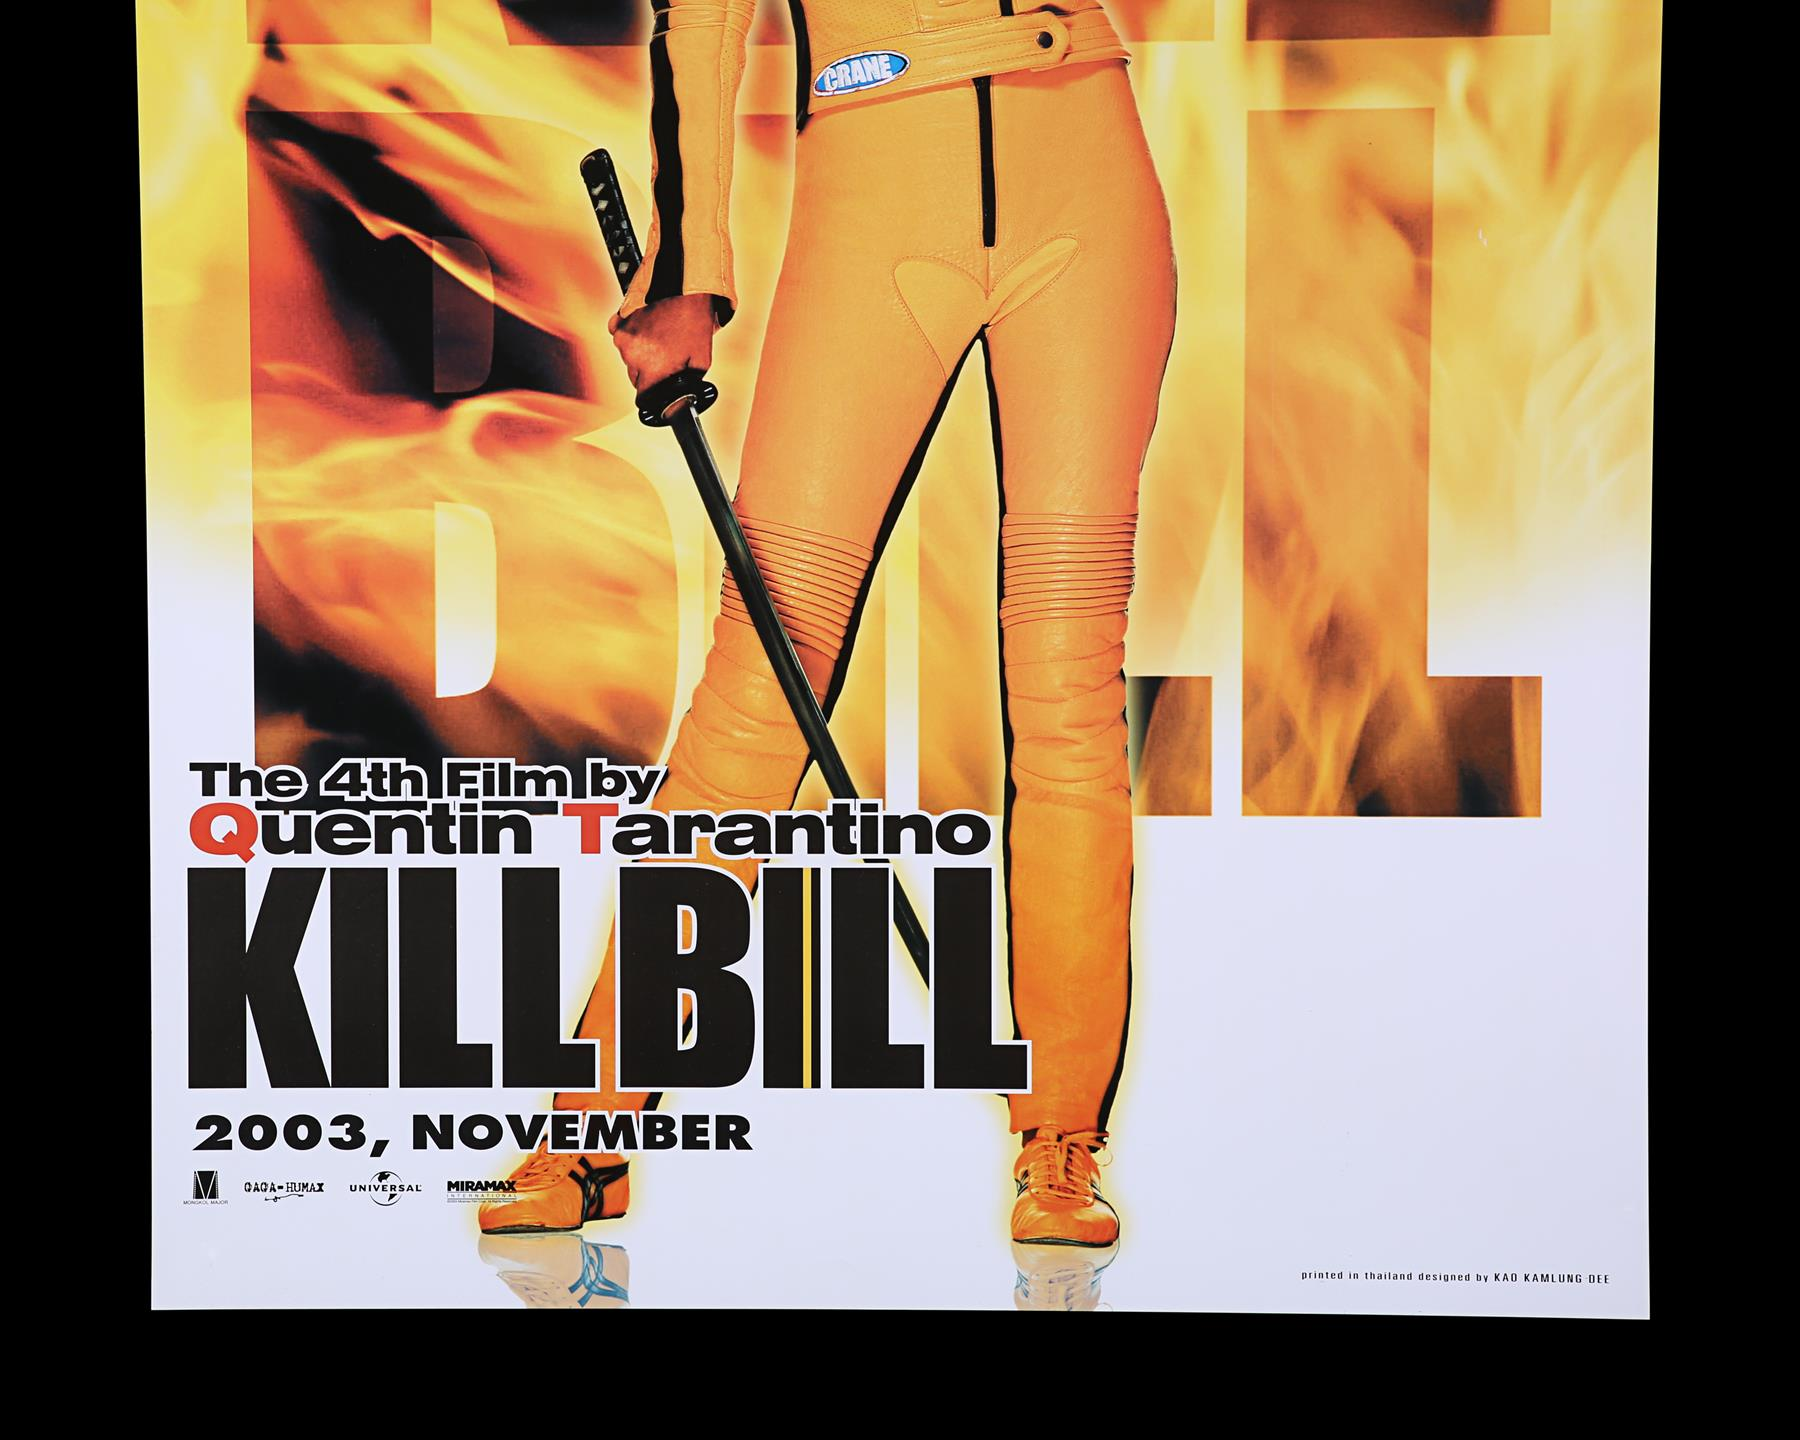 KILL BILL (2003) - US One-Sheet and Thai One-Sheet, 2003 - Image 5 of 10